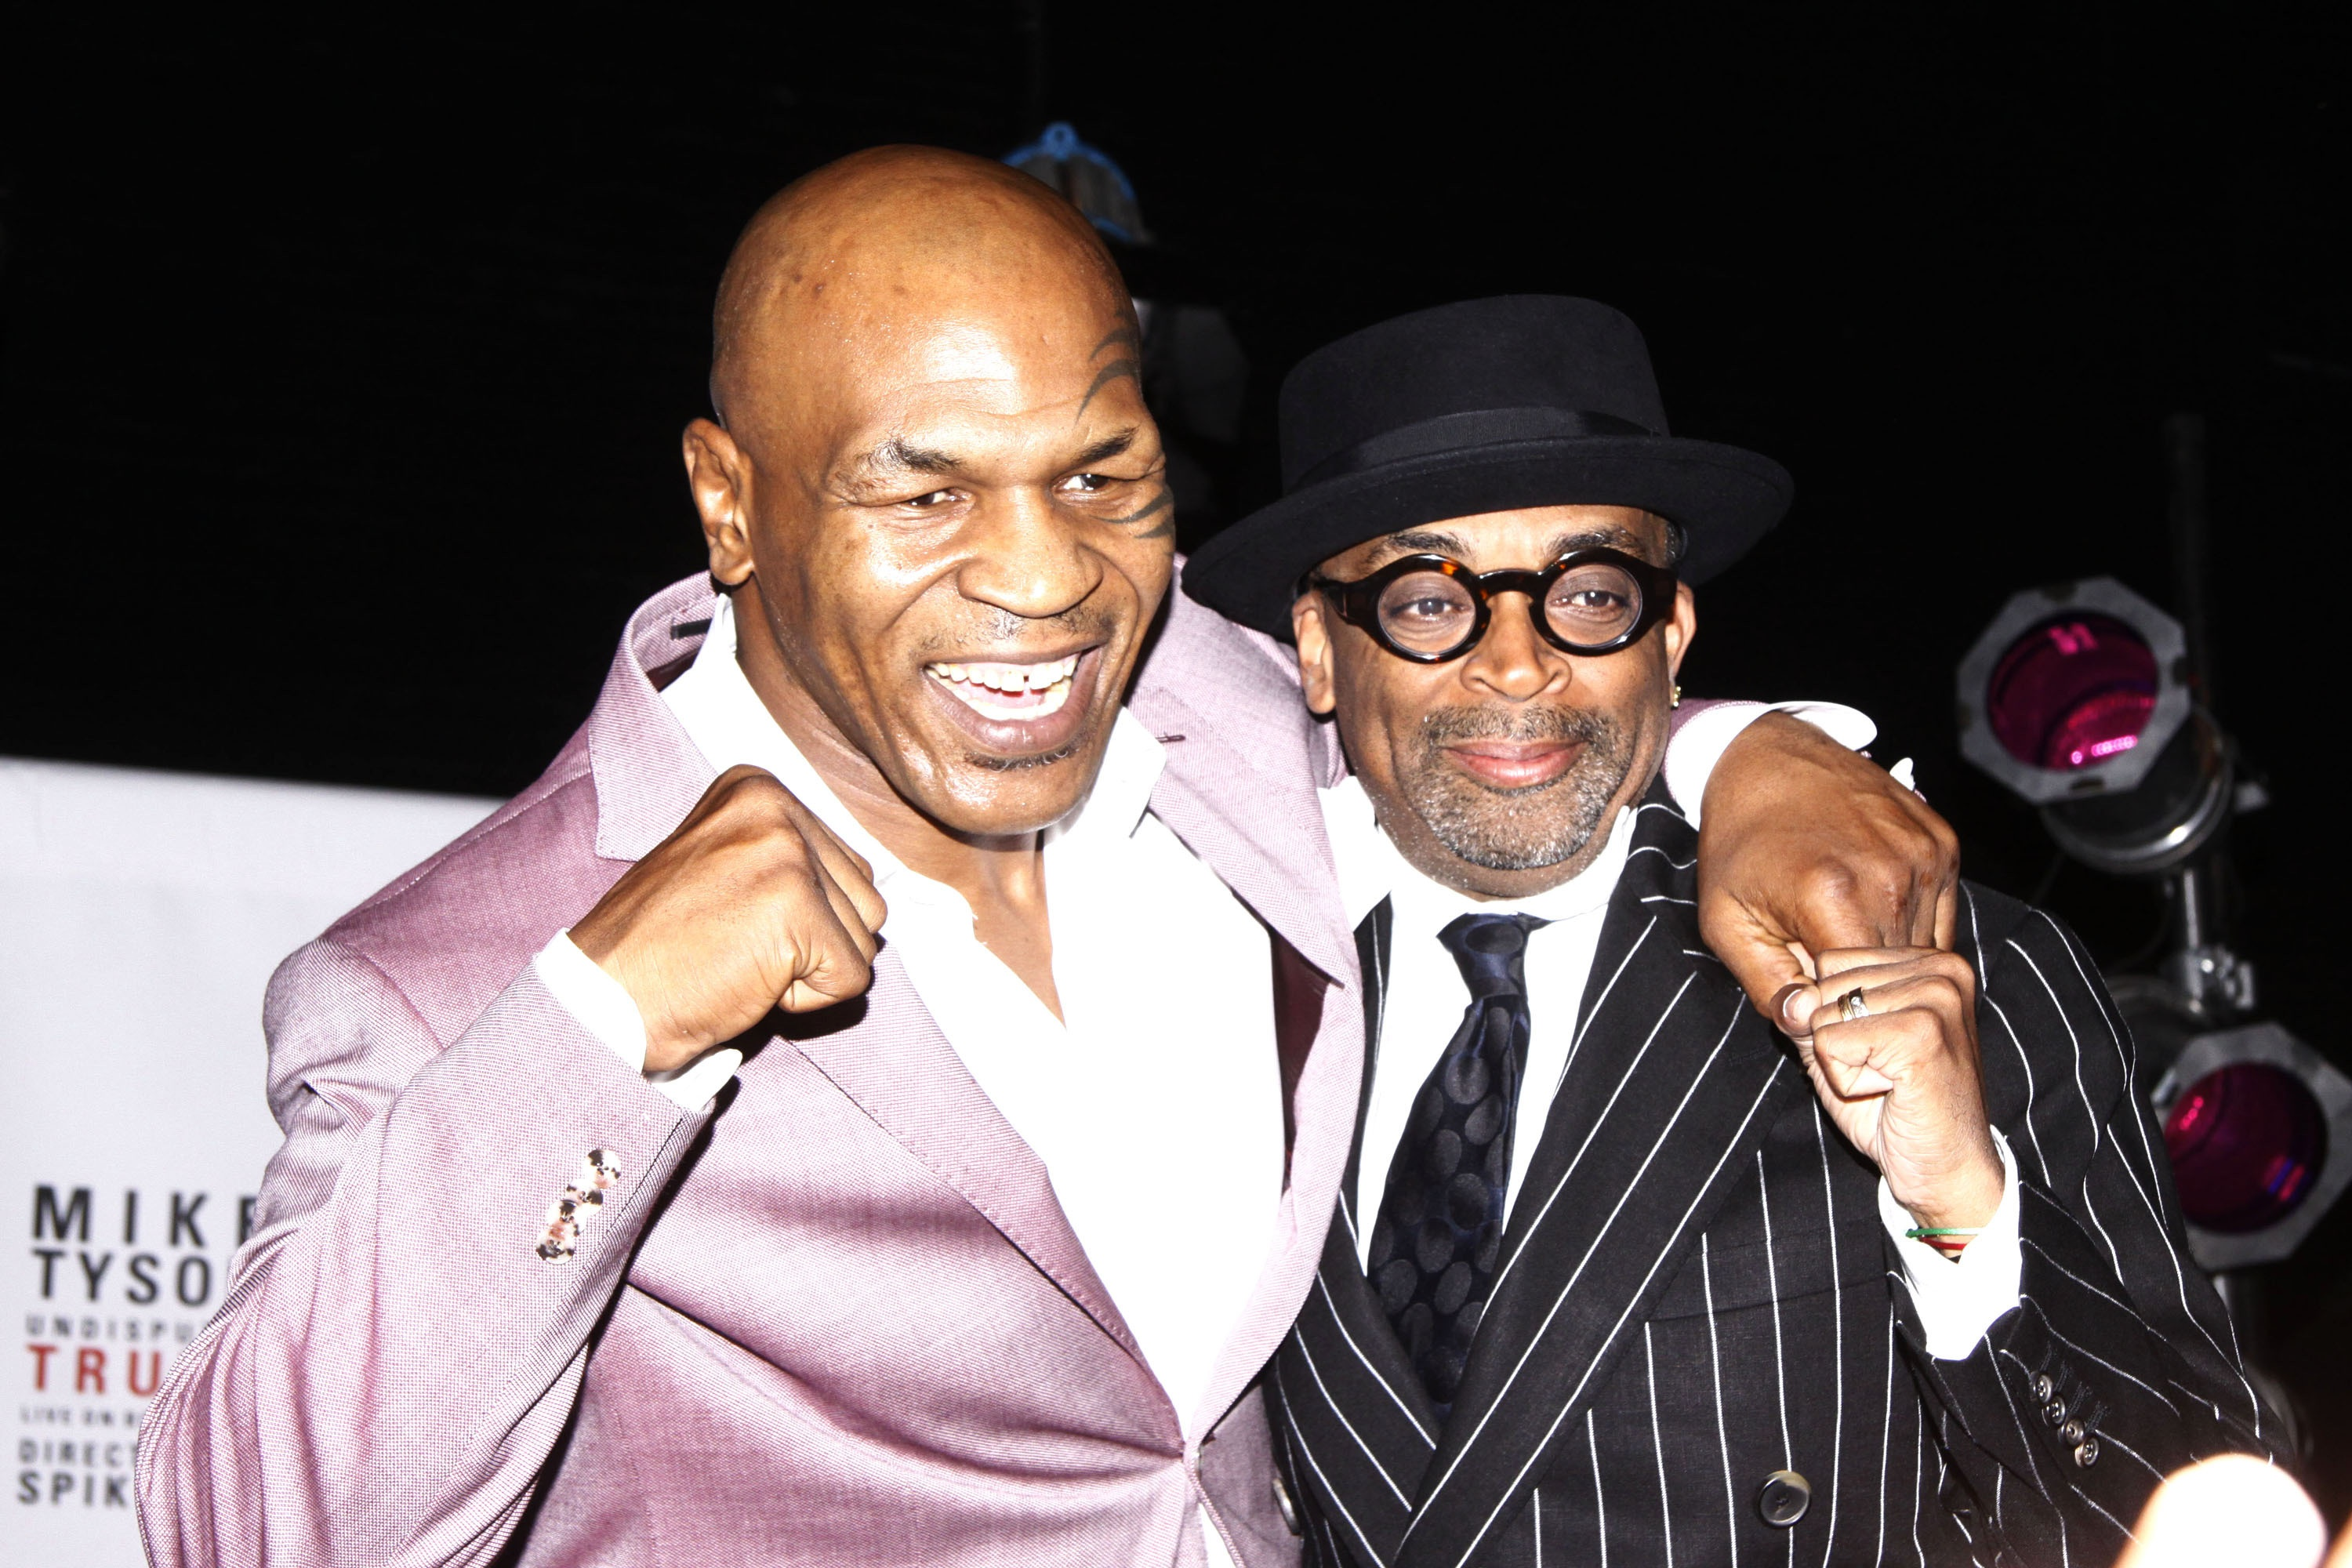 mike tyson videomike tyson 2016, mike tyson биография, mike tyson foto, mike tyson video, mike tyson википедия, mike tyson boxrec, mike tyson film, mike tyson mysteries, mike tyson 2017, mike tyson height, mike tyson wiki, mike tyson soulja boy, mike tyson quotes, mike tyson boks, mike tyson vs peter mcneeley, mike tyson undisputed truth, mike tyson instagram, mike tyson art, mike tyson ufc, mike tyson knockouts